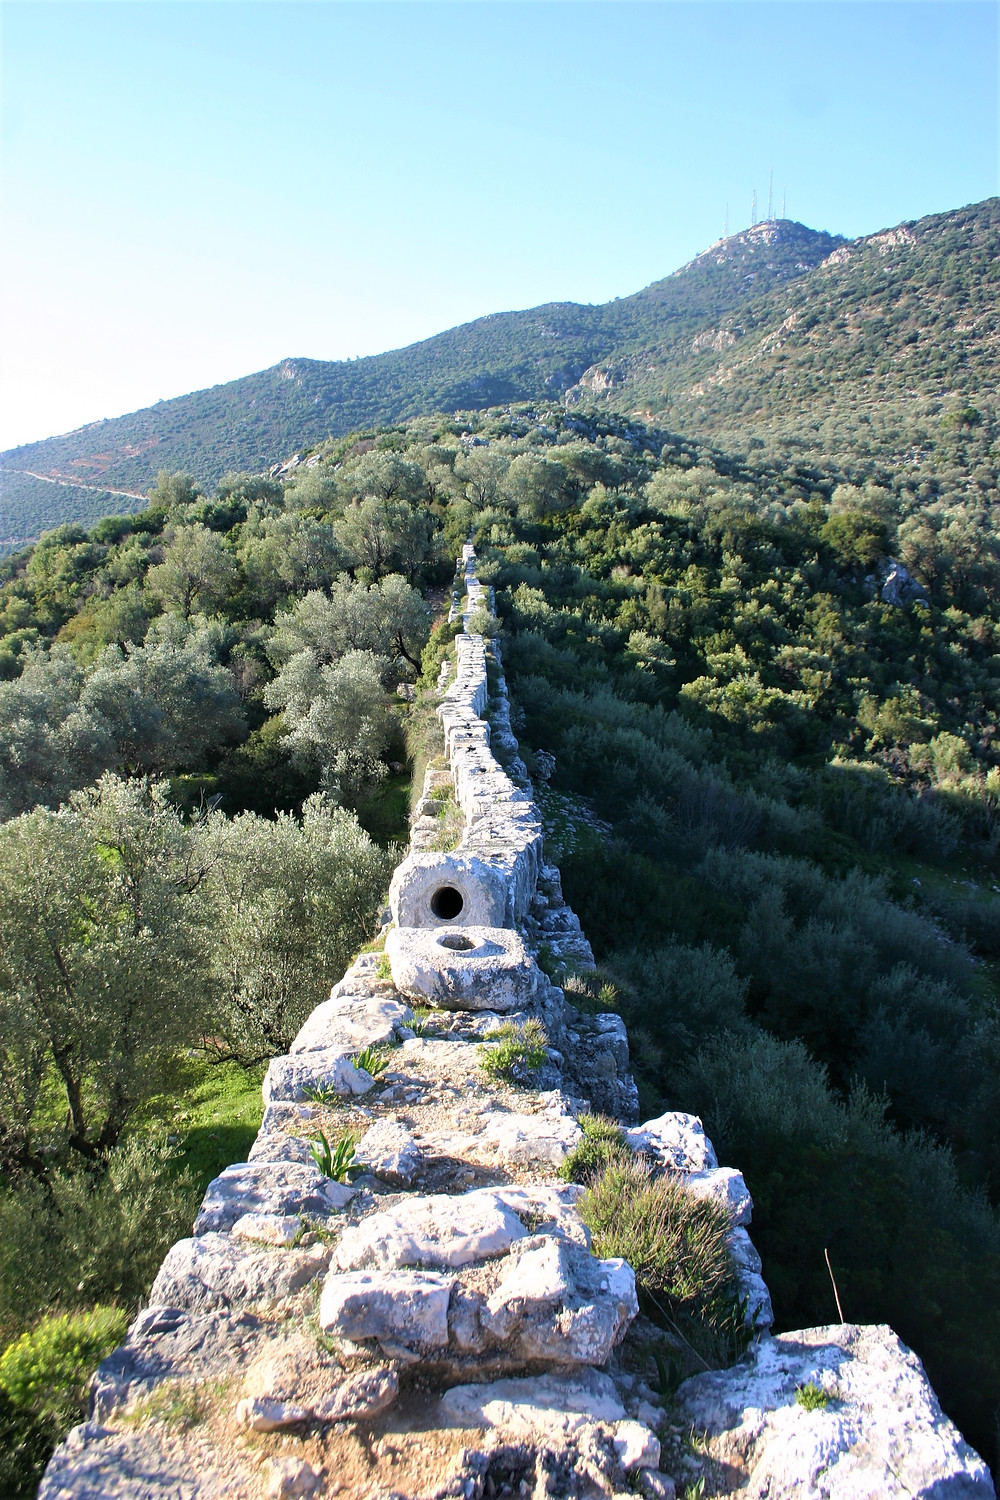 Pipe of the Delikkemer Lycian Aqueduct